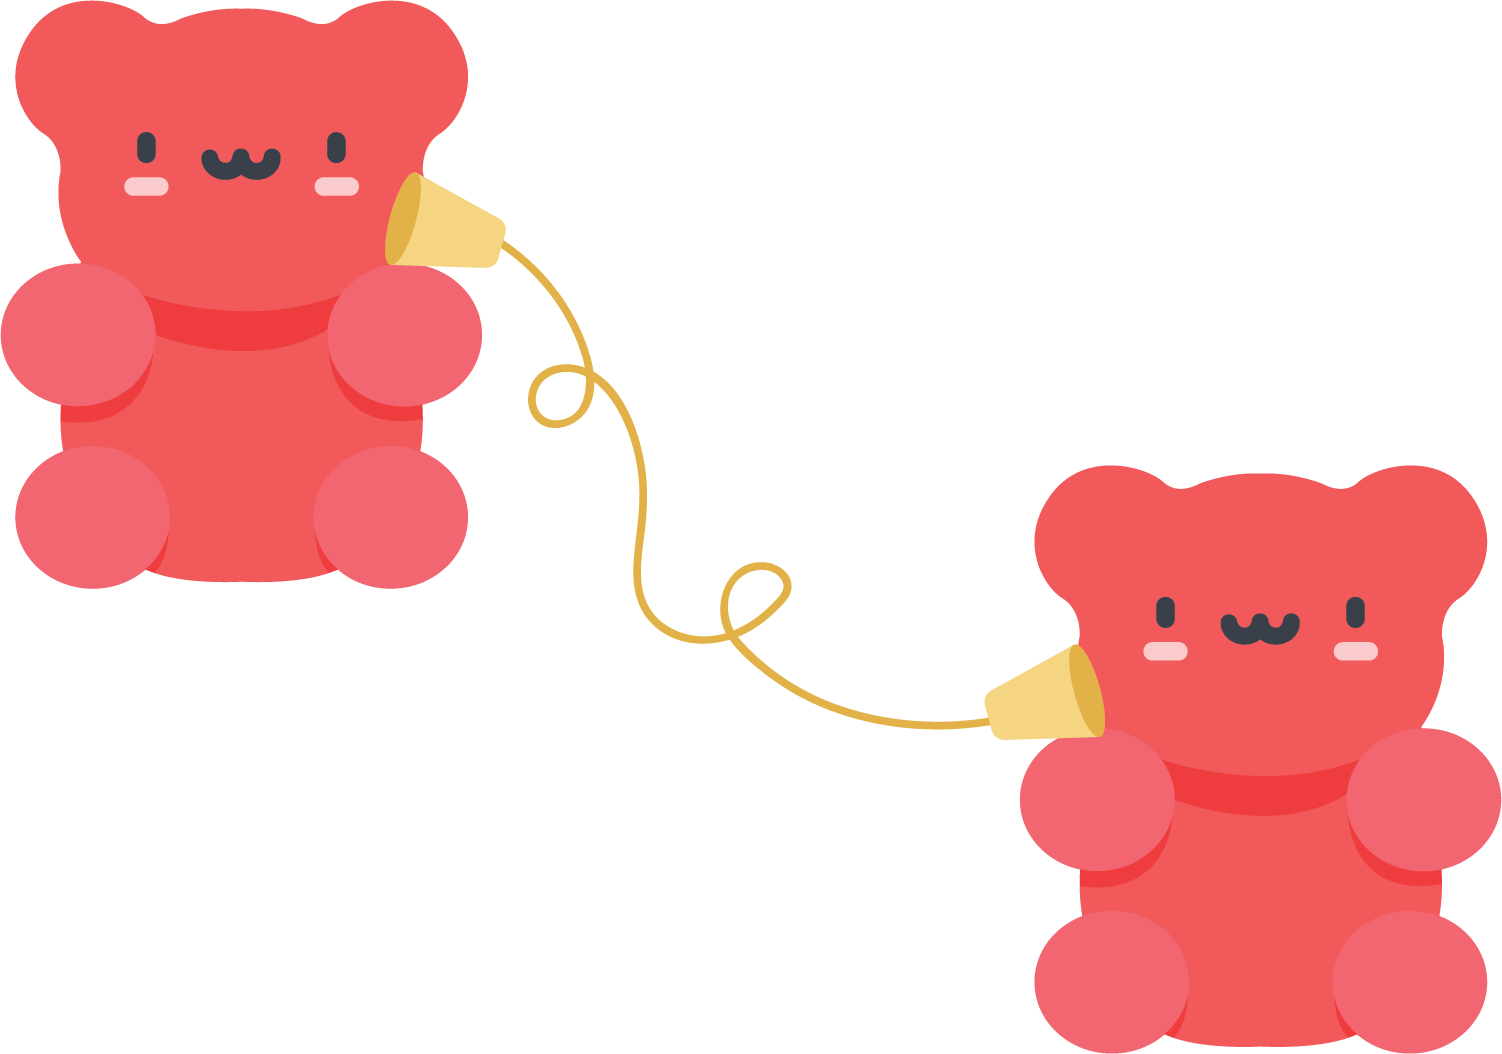 Bears communicating